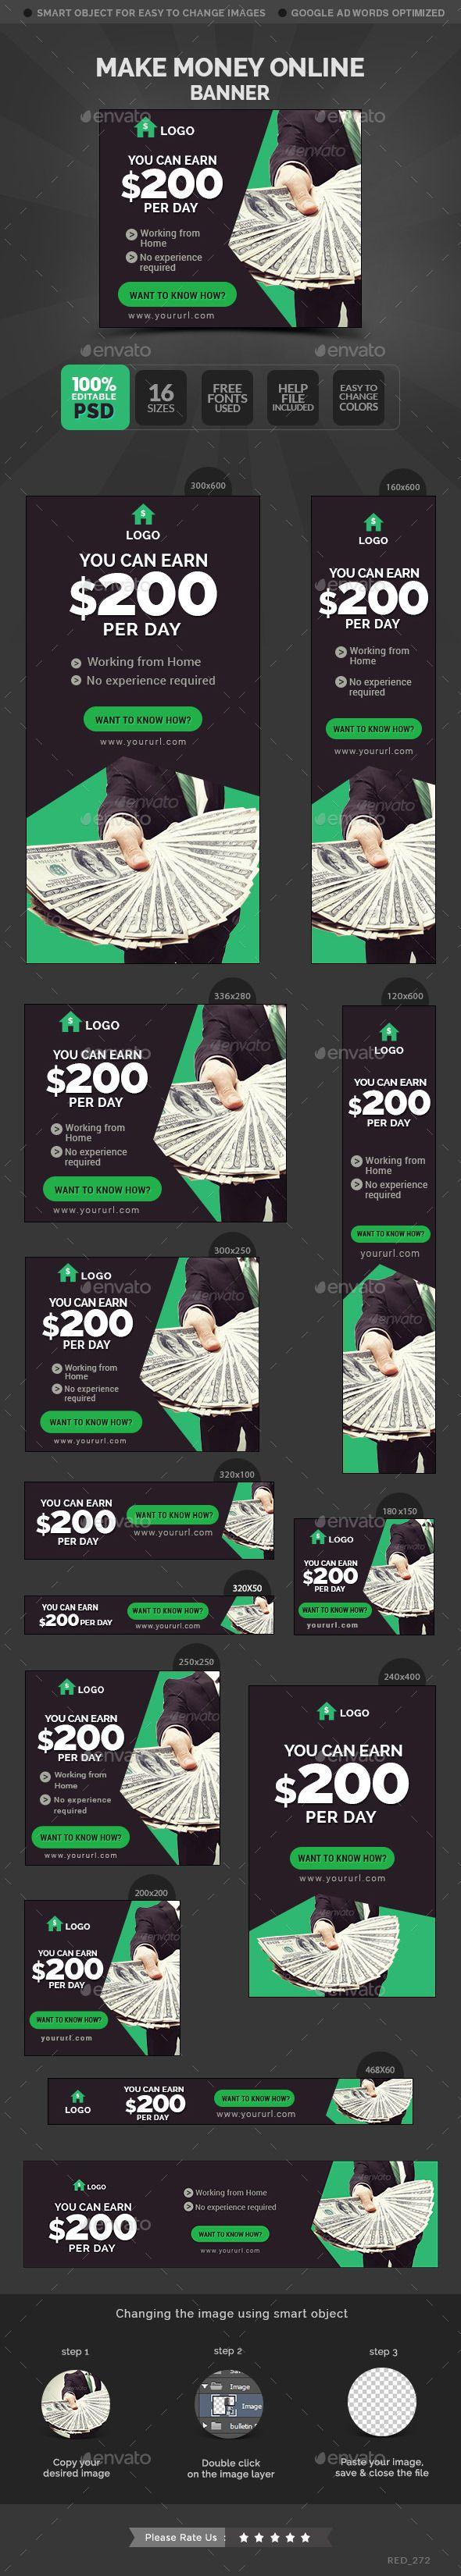 Make Money Online Banners Template #design Download: http://graphicriver.net/item/make-money-online-banners/11781362?ref=ksioks